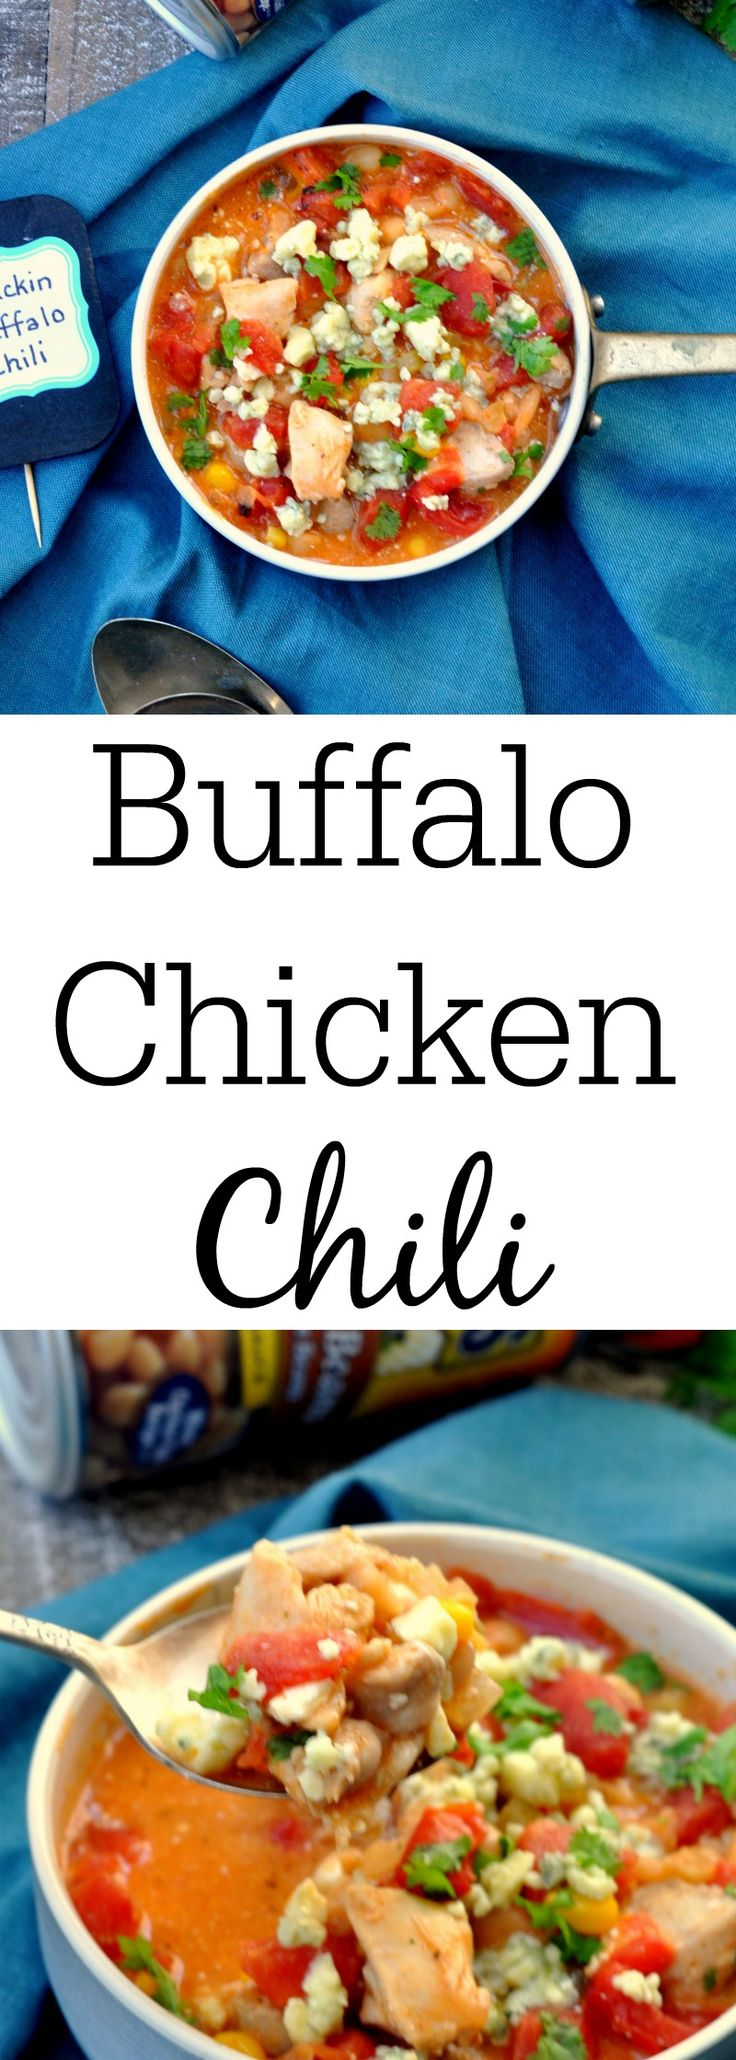 Buffalo Chicken Chili